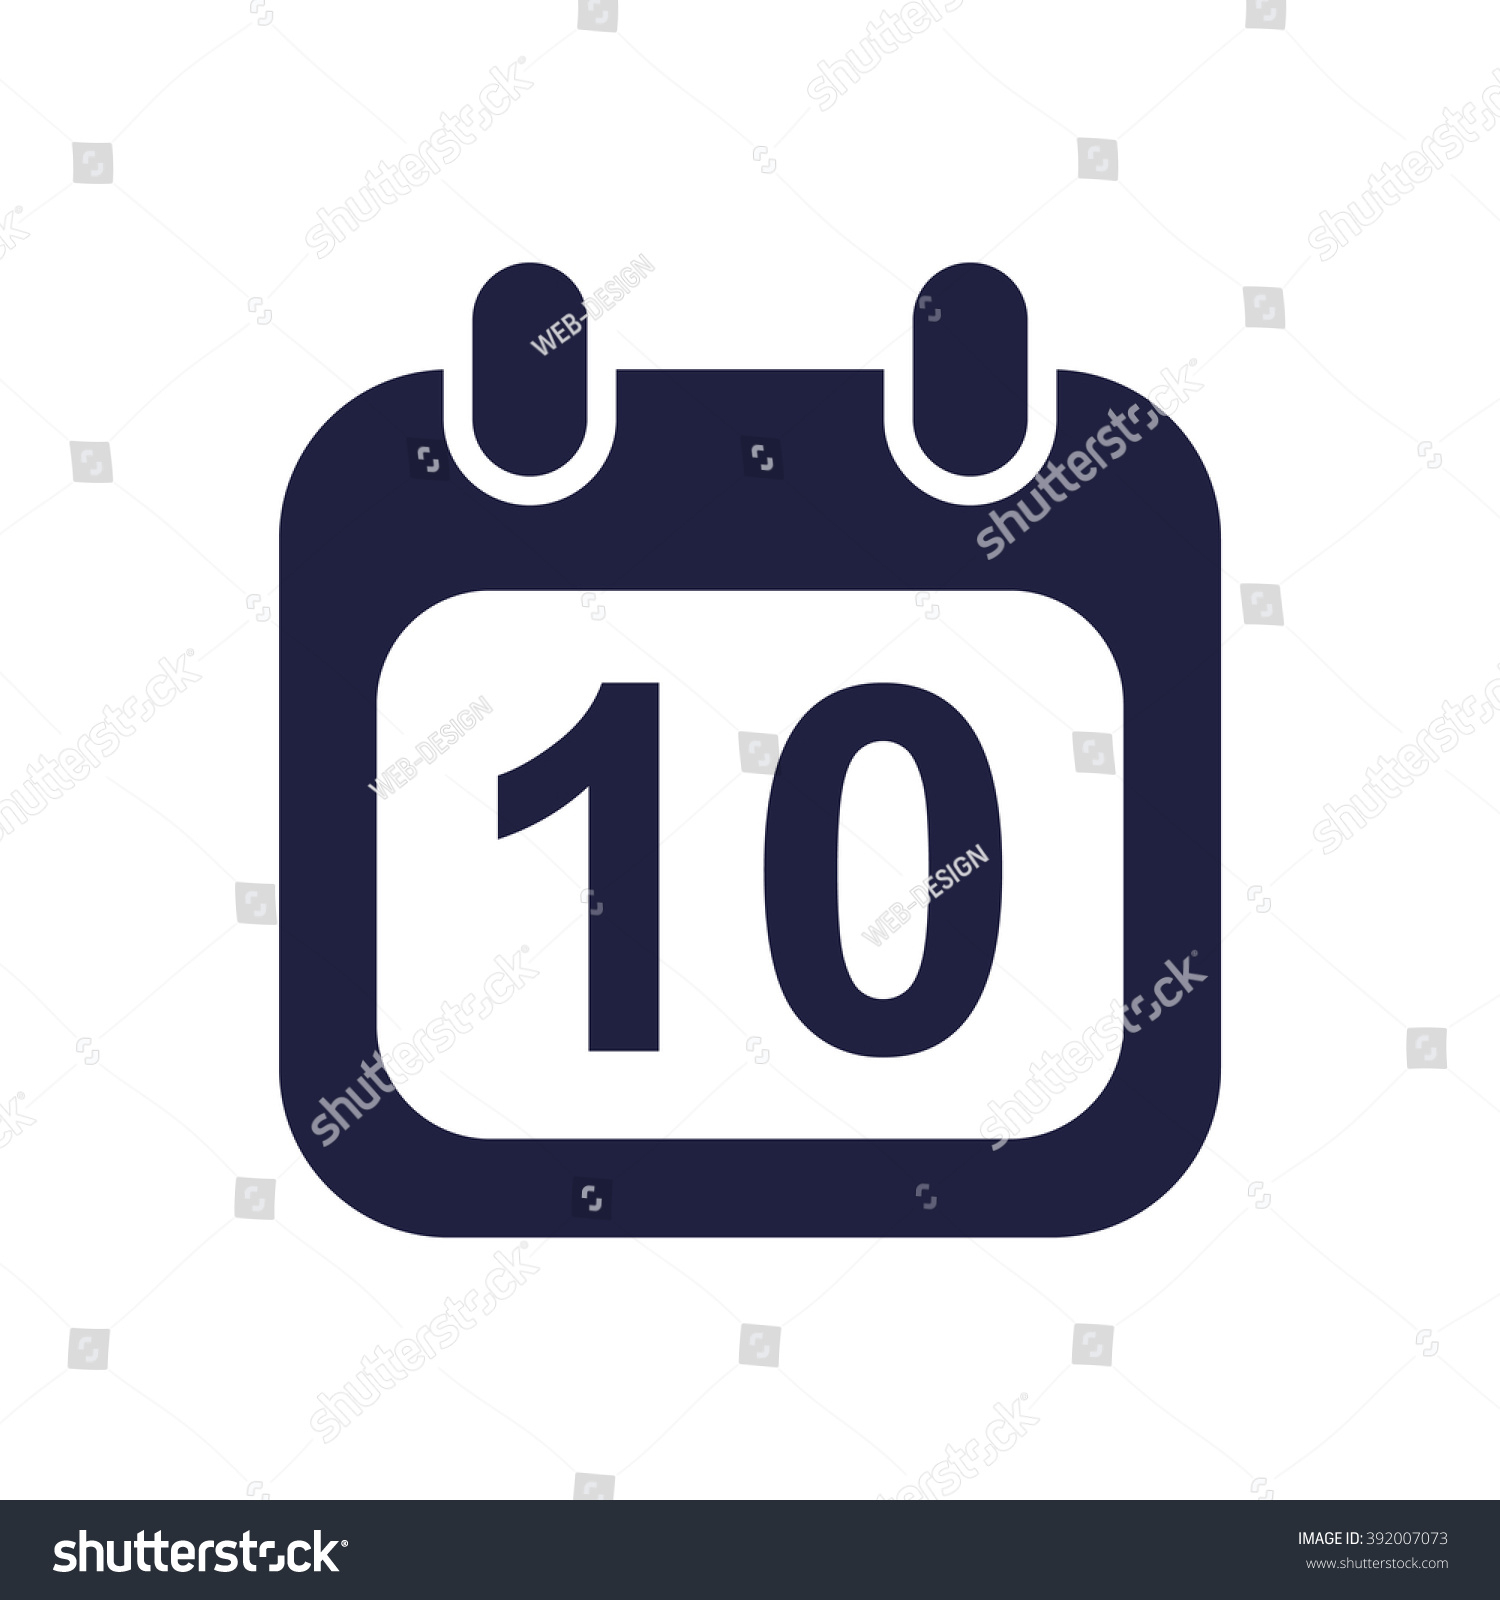 Calendar Icon Jpg Stock Vector (Royalty Free) 392007073 throughout Calendar Icon Jpg